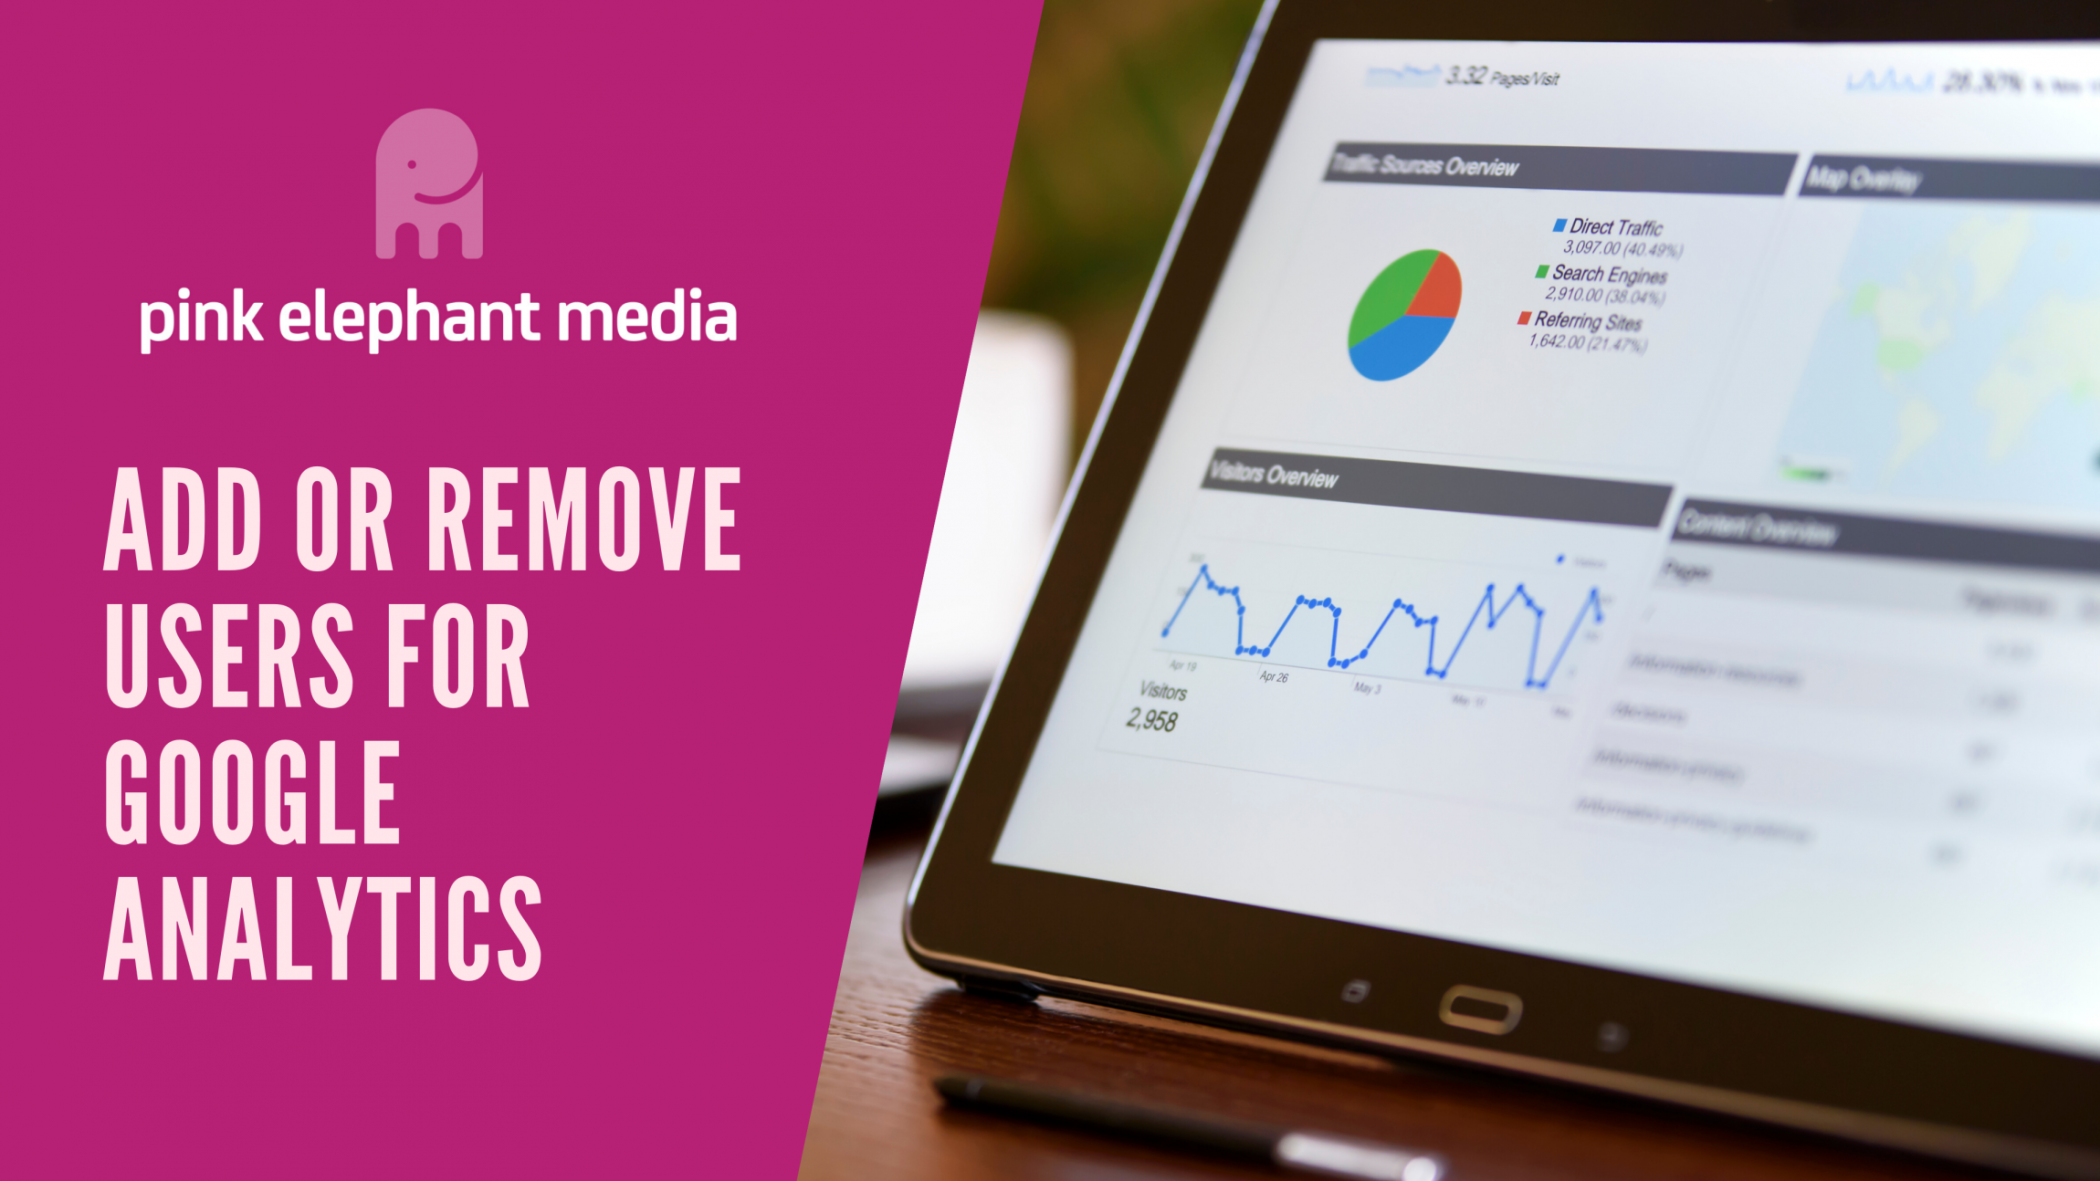 Add or remove users for Google Analytics